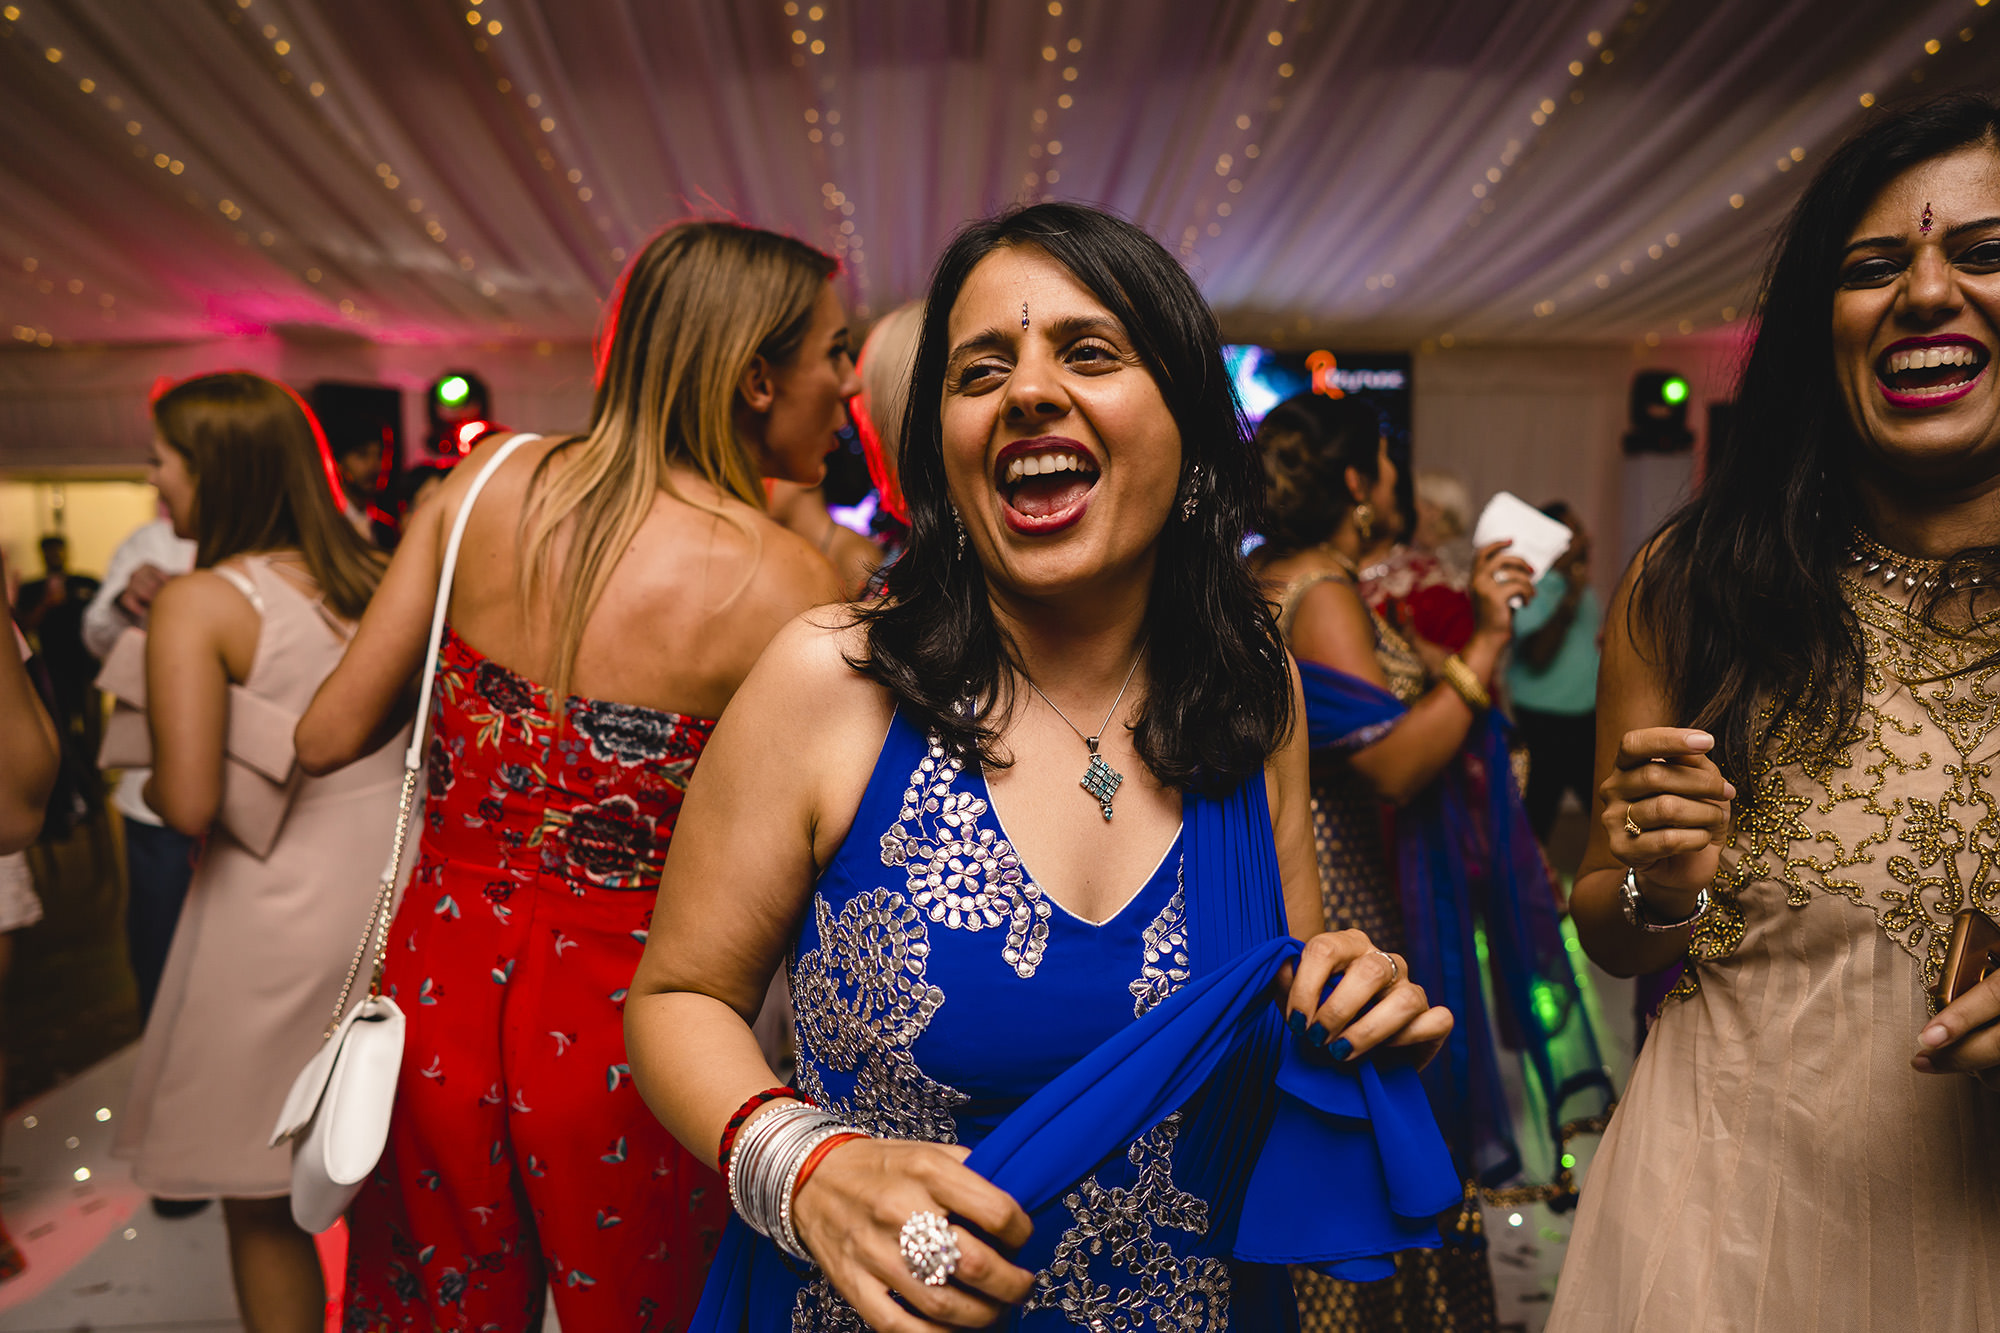 friends dancing at the asian wedding reception